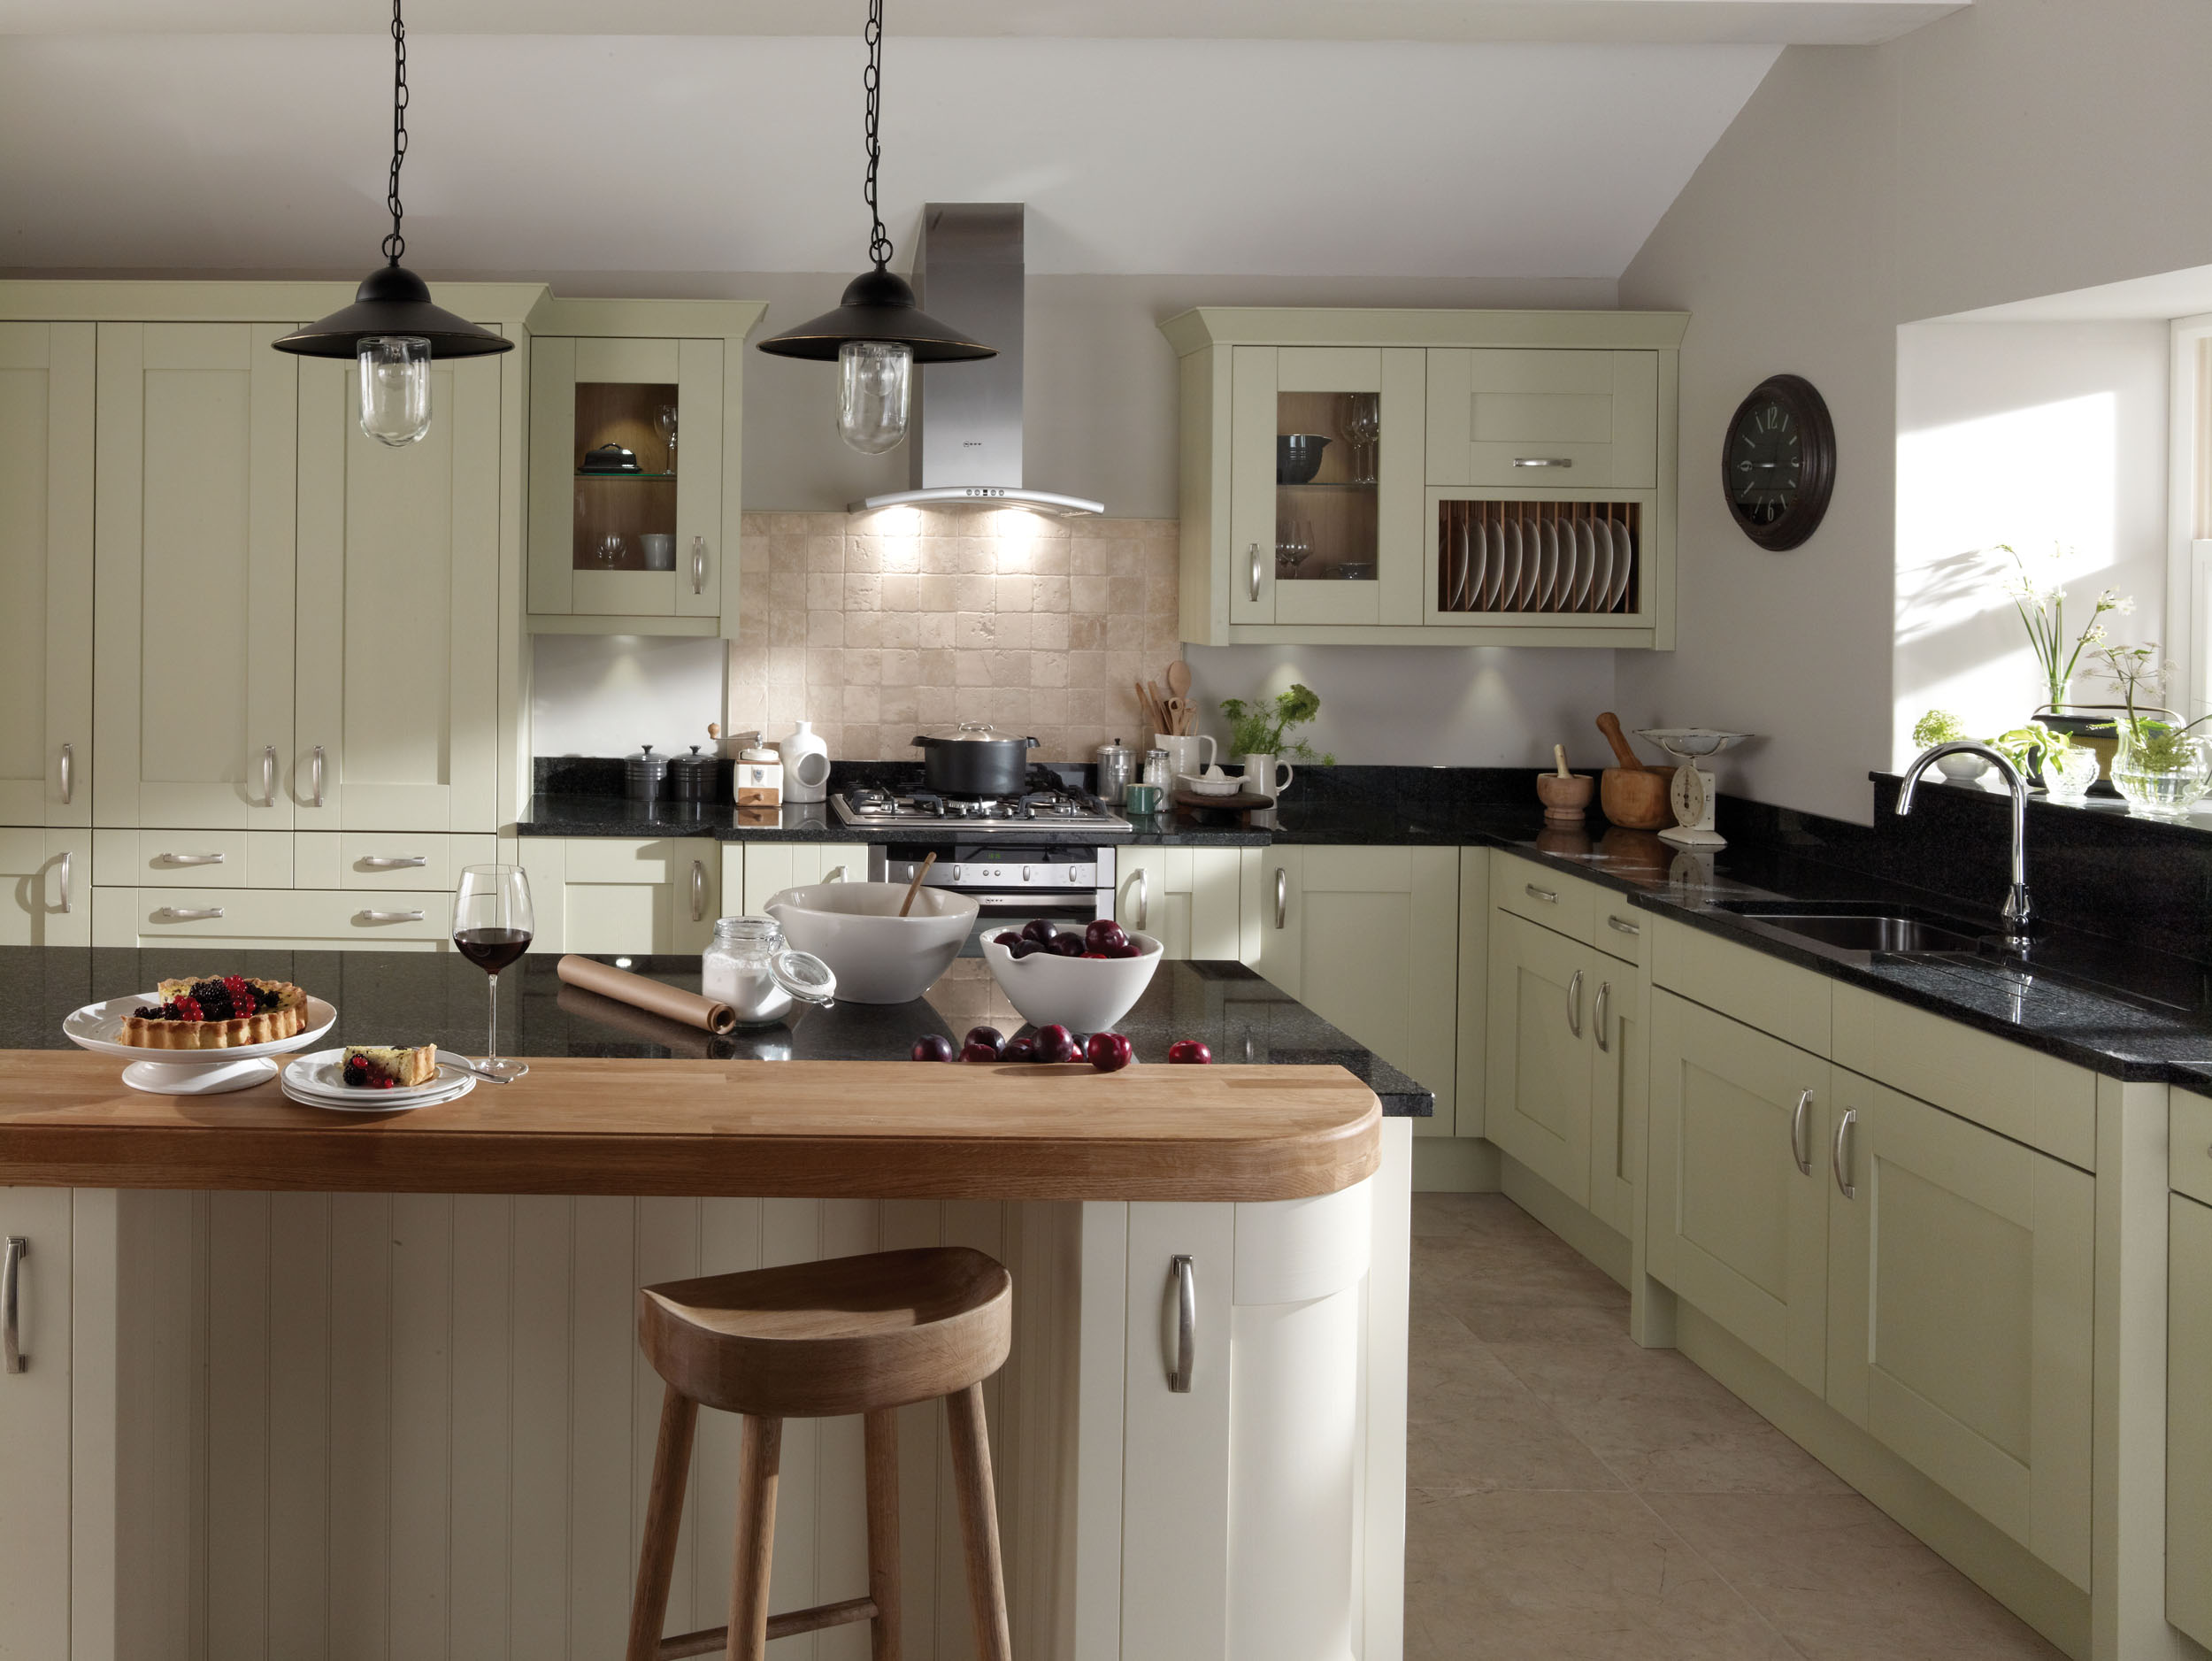 Milbourne alabaster from eaton kitchen designs wolverhampton for Kitchen ideas uk